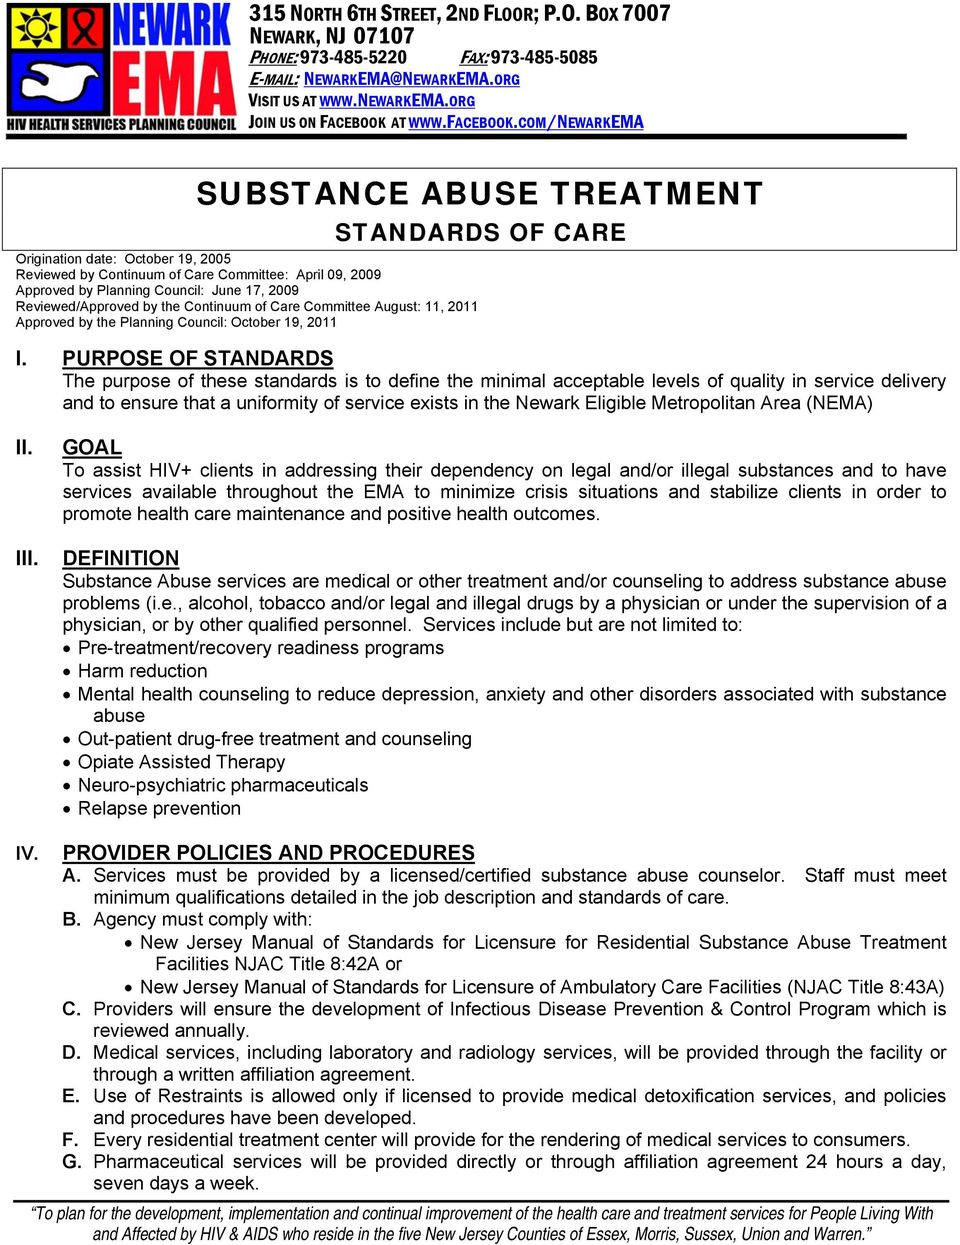 COM/NEWARKEMA SUBSTANCE ABUSE TREATMENT STANDARDS OF CARE Origination date: October 19, 2005 Reviewed by Continuum of Care Committee: April 09, 2009 Approved by Planning Council: June 17, 2009